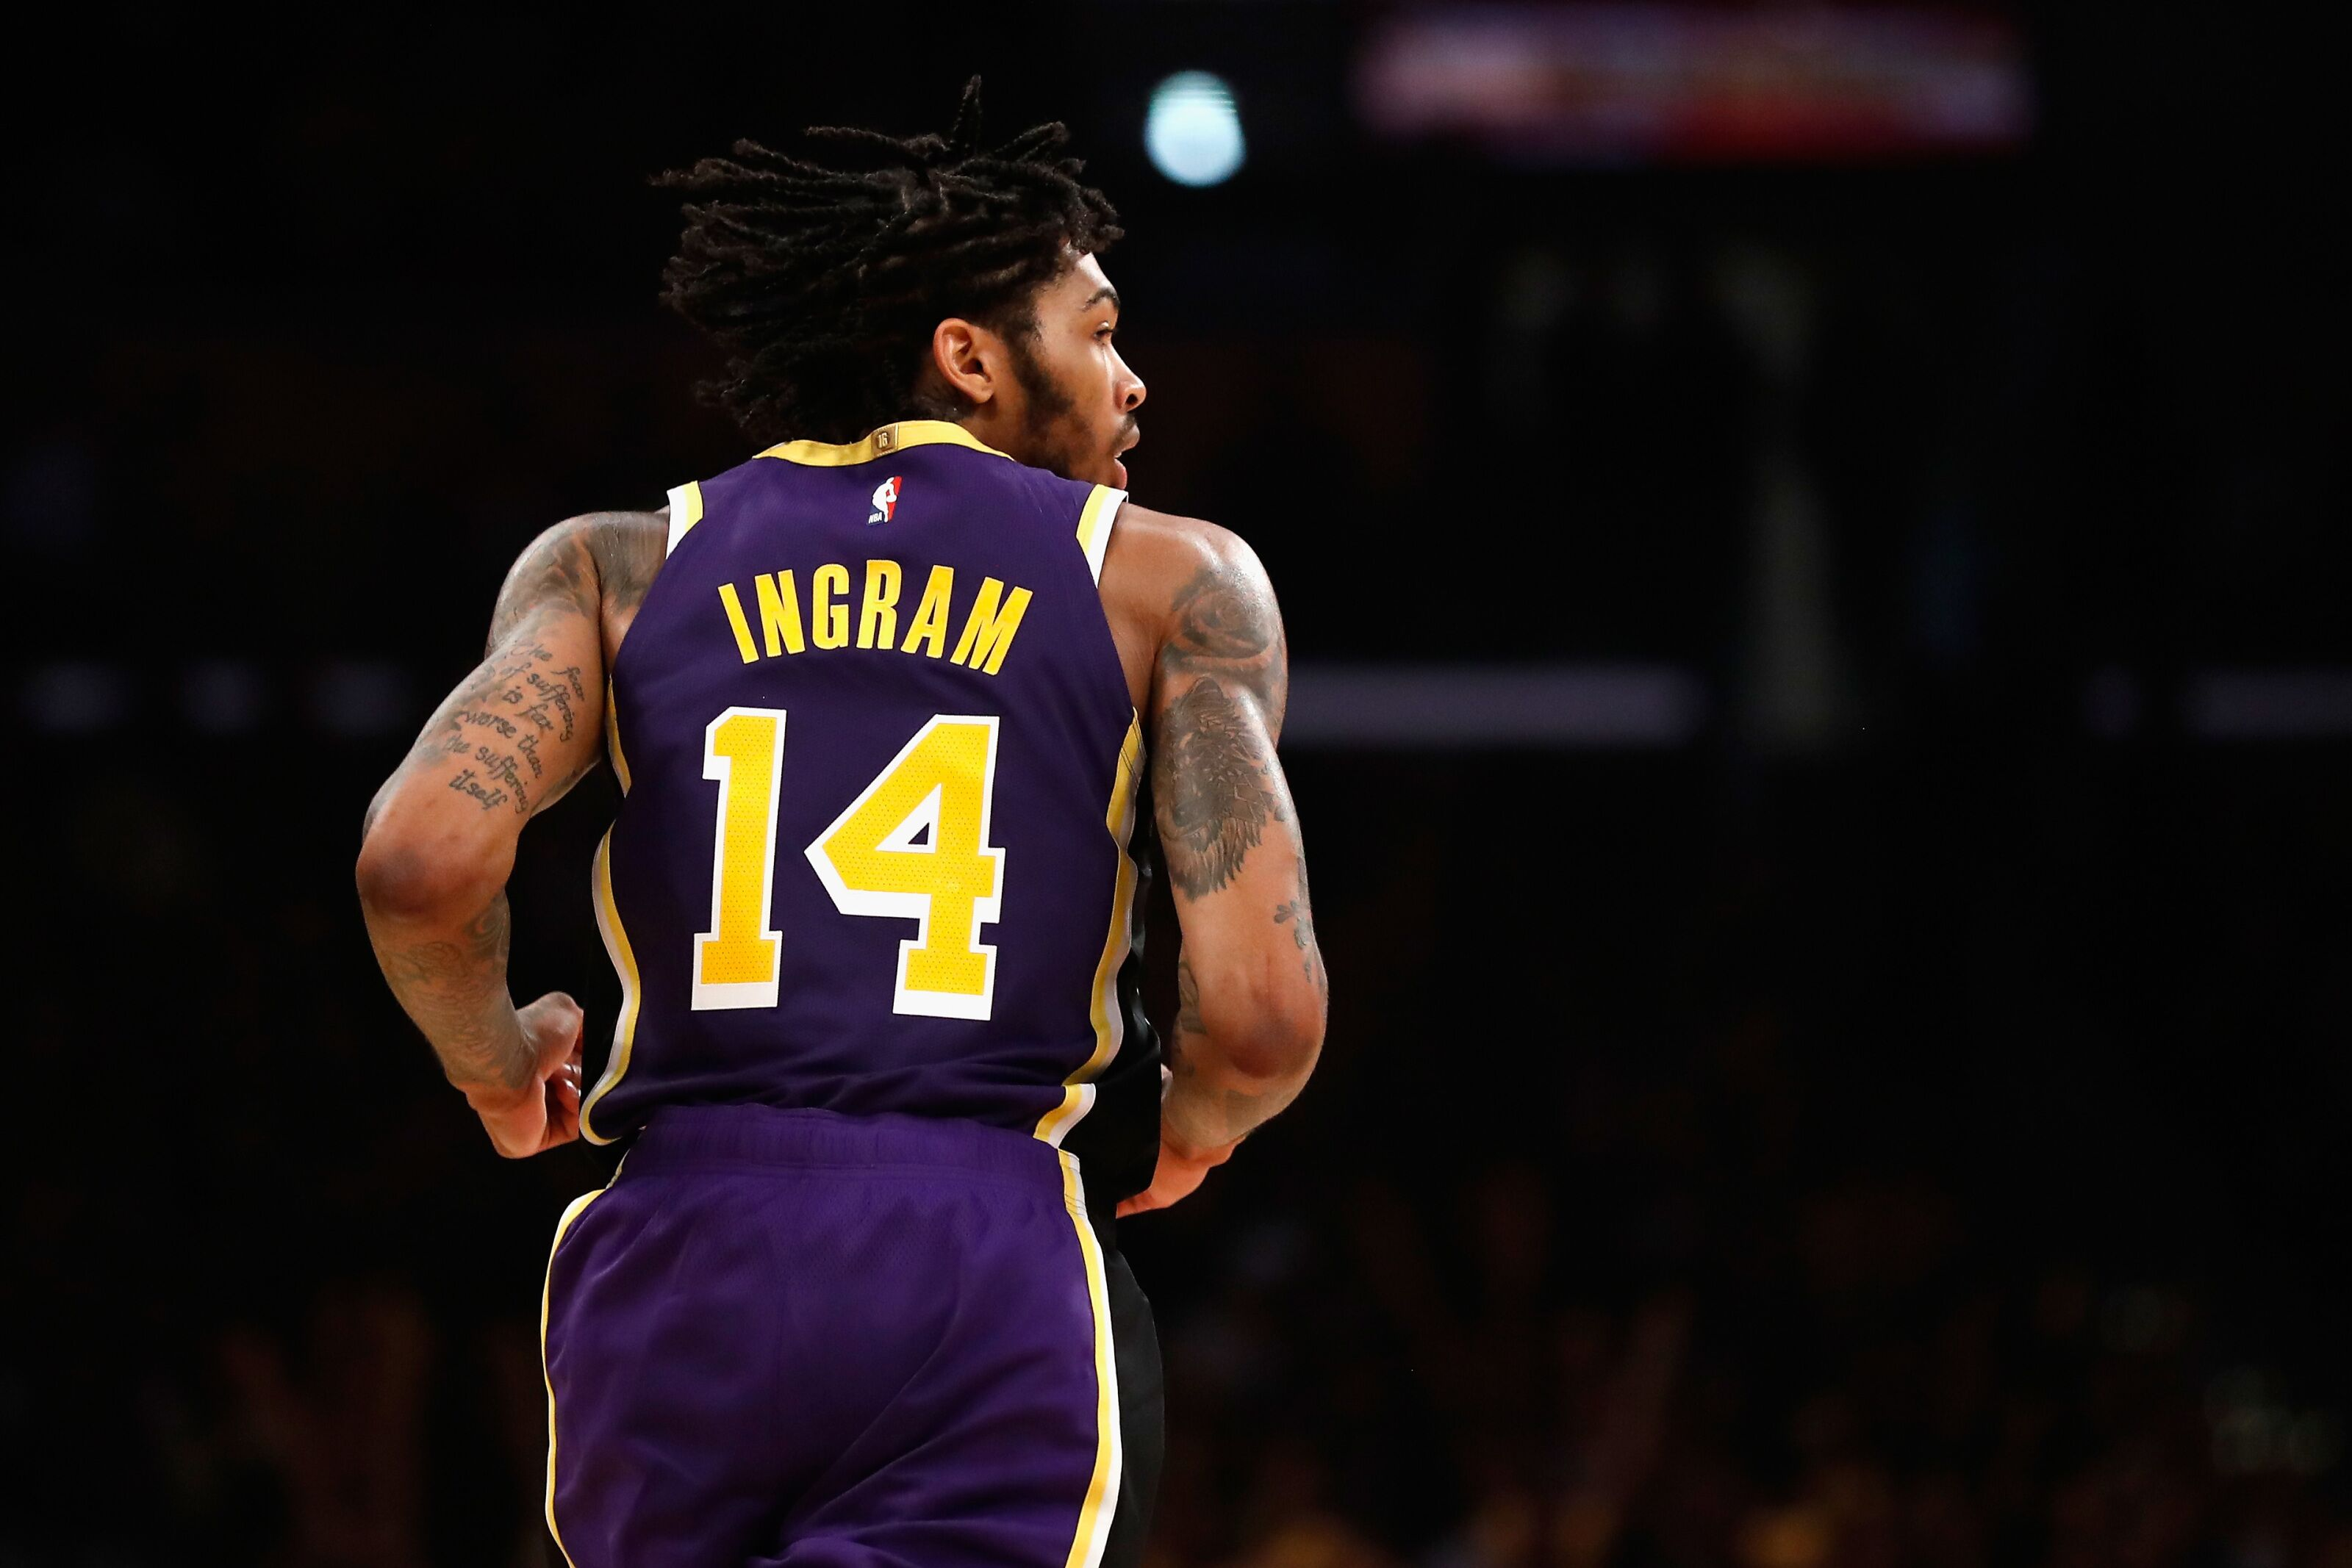 separation shoes ffb61 466b5 Los Angeles Lakers: Brandon Ingram becoming the most expendable